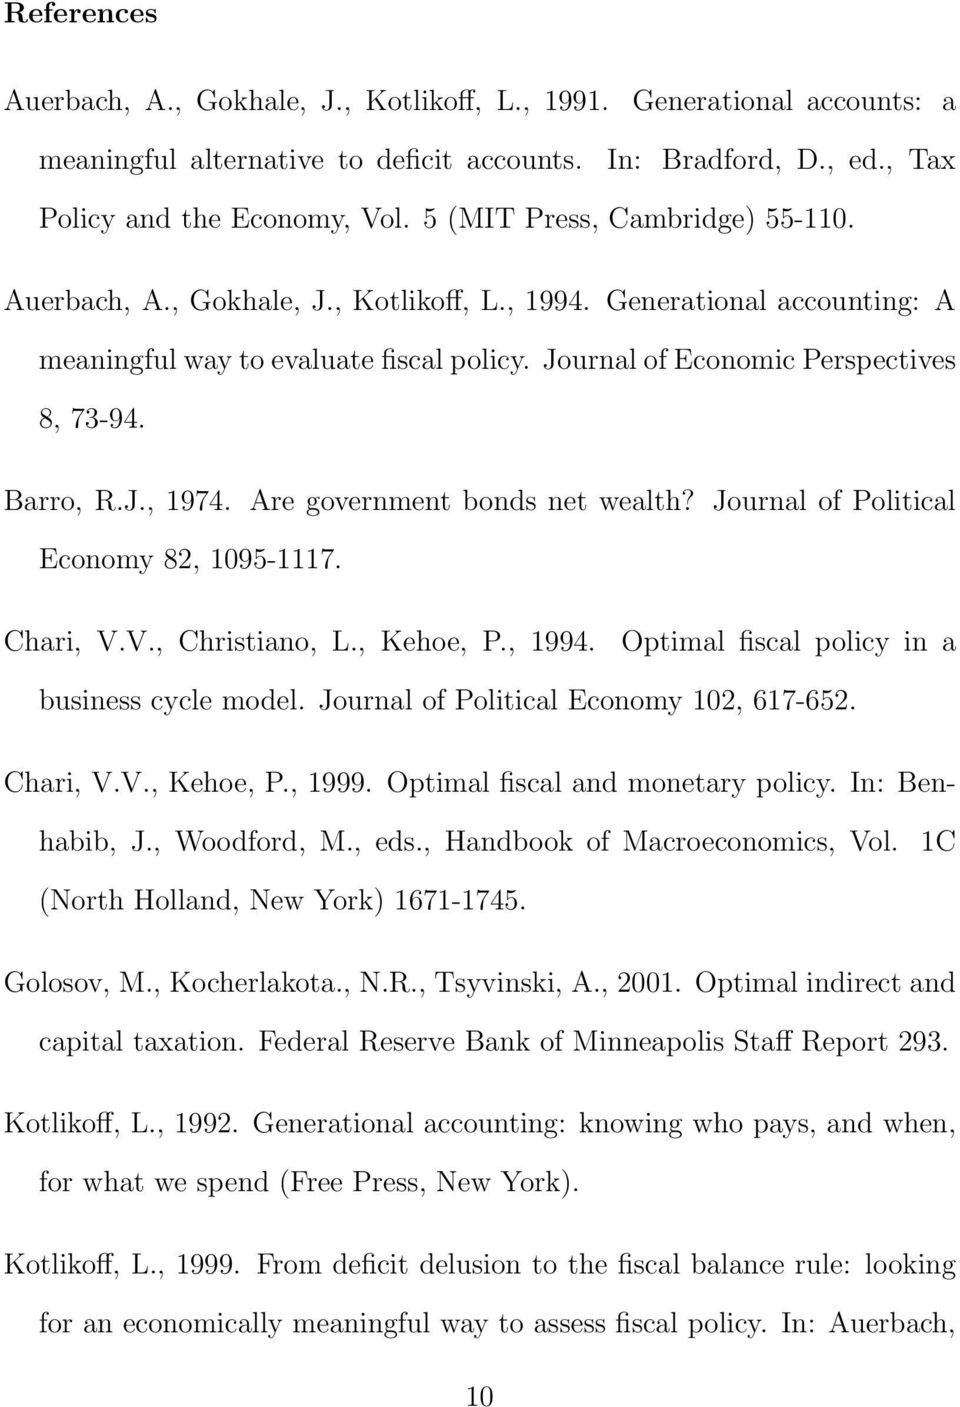 Barro, R.J., 1974. Are government bonds net wealth? Journal of Political Economy 82, 1095-1117. Chari, V.V., Christiano, L., Kehoe, P., 1994. Optimal fiscal policy in a business cycle model.